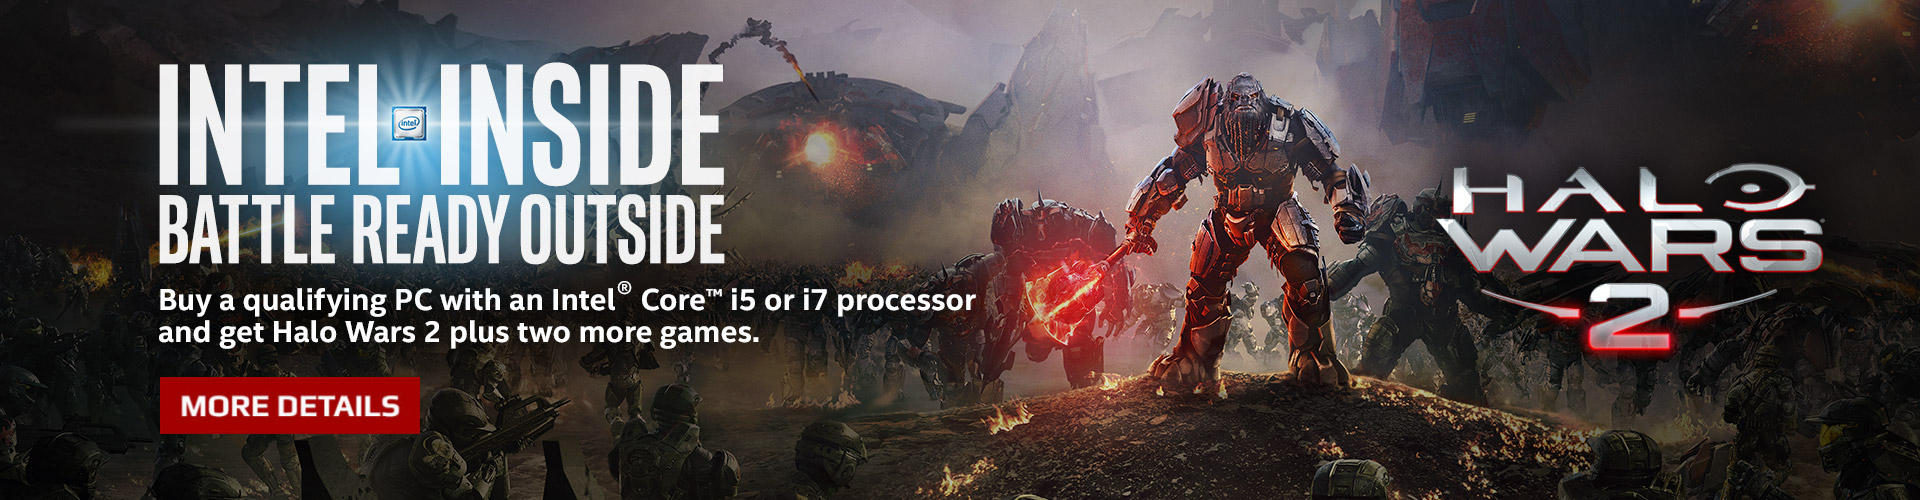 Halo Free Game Promotion